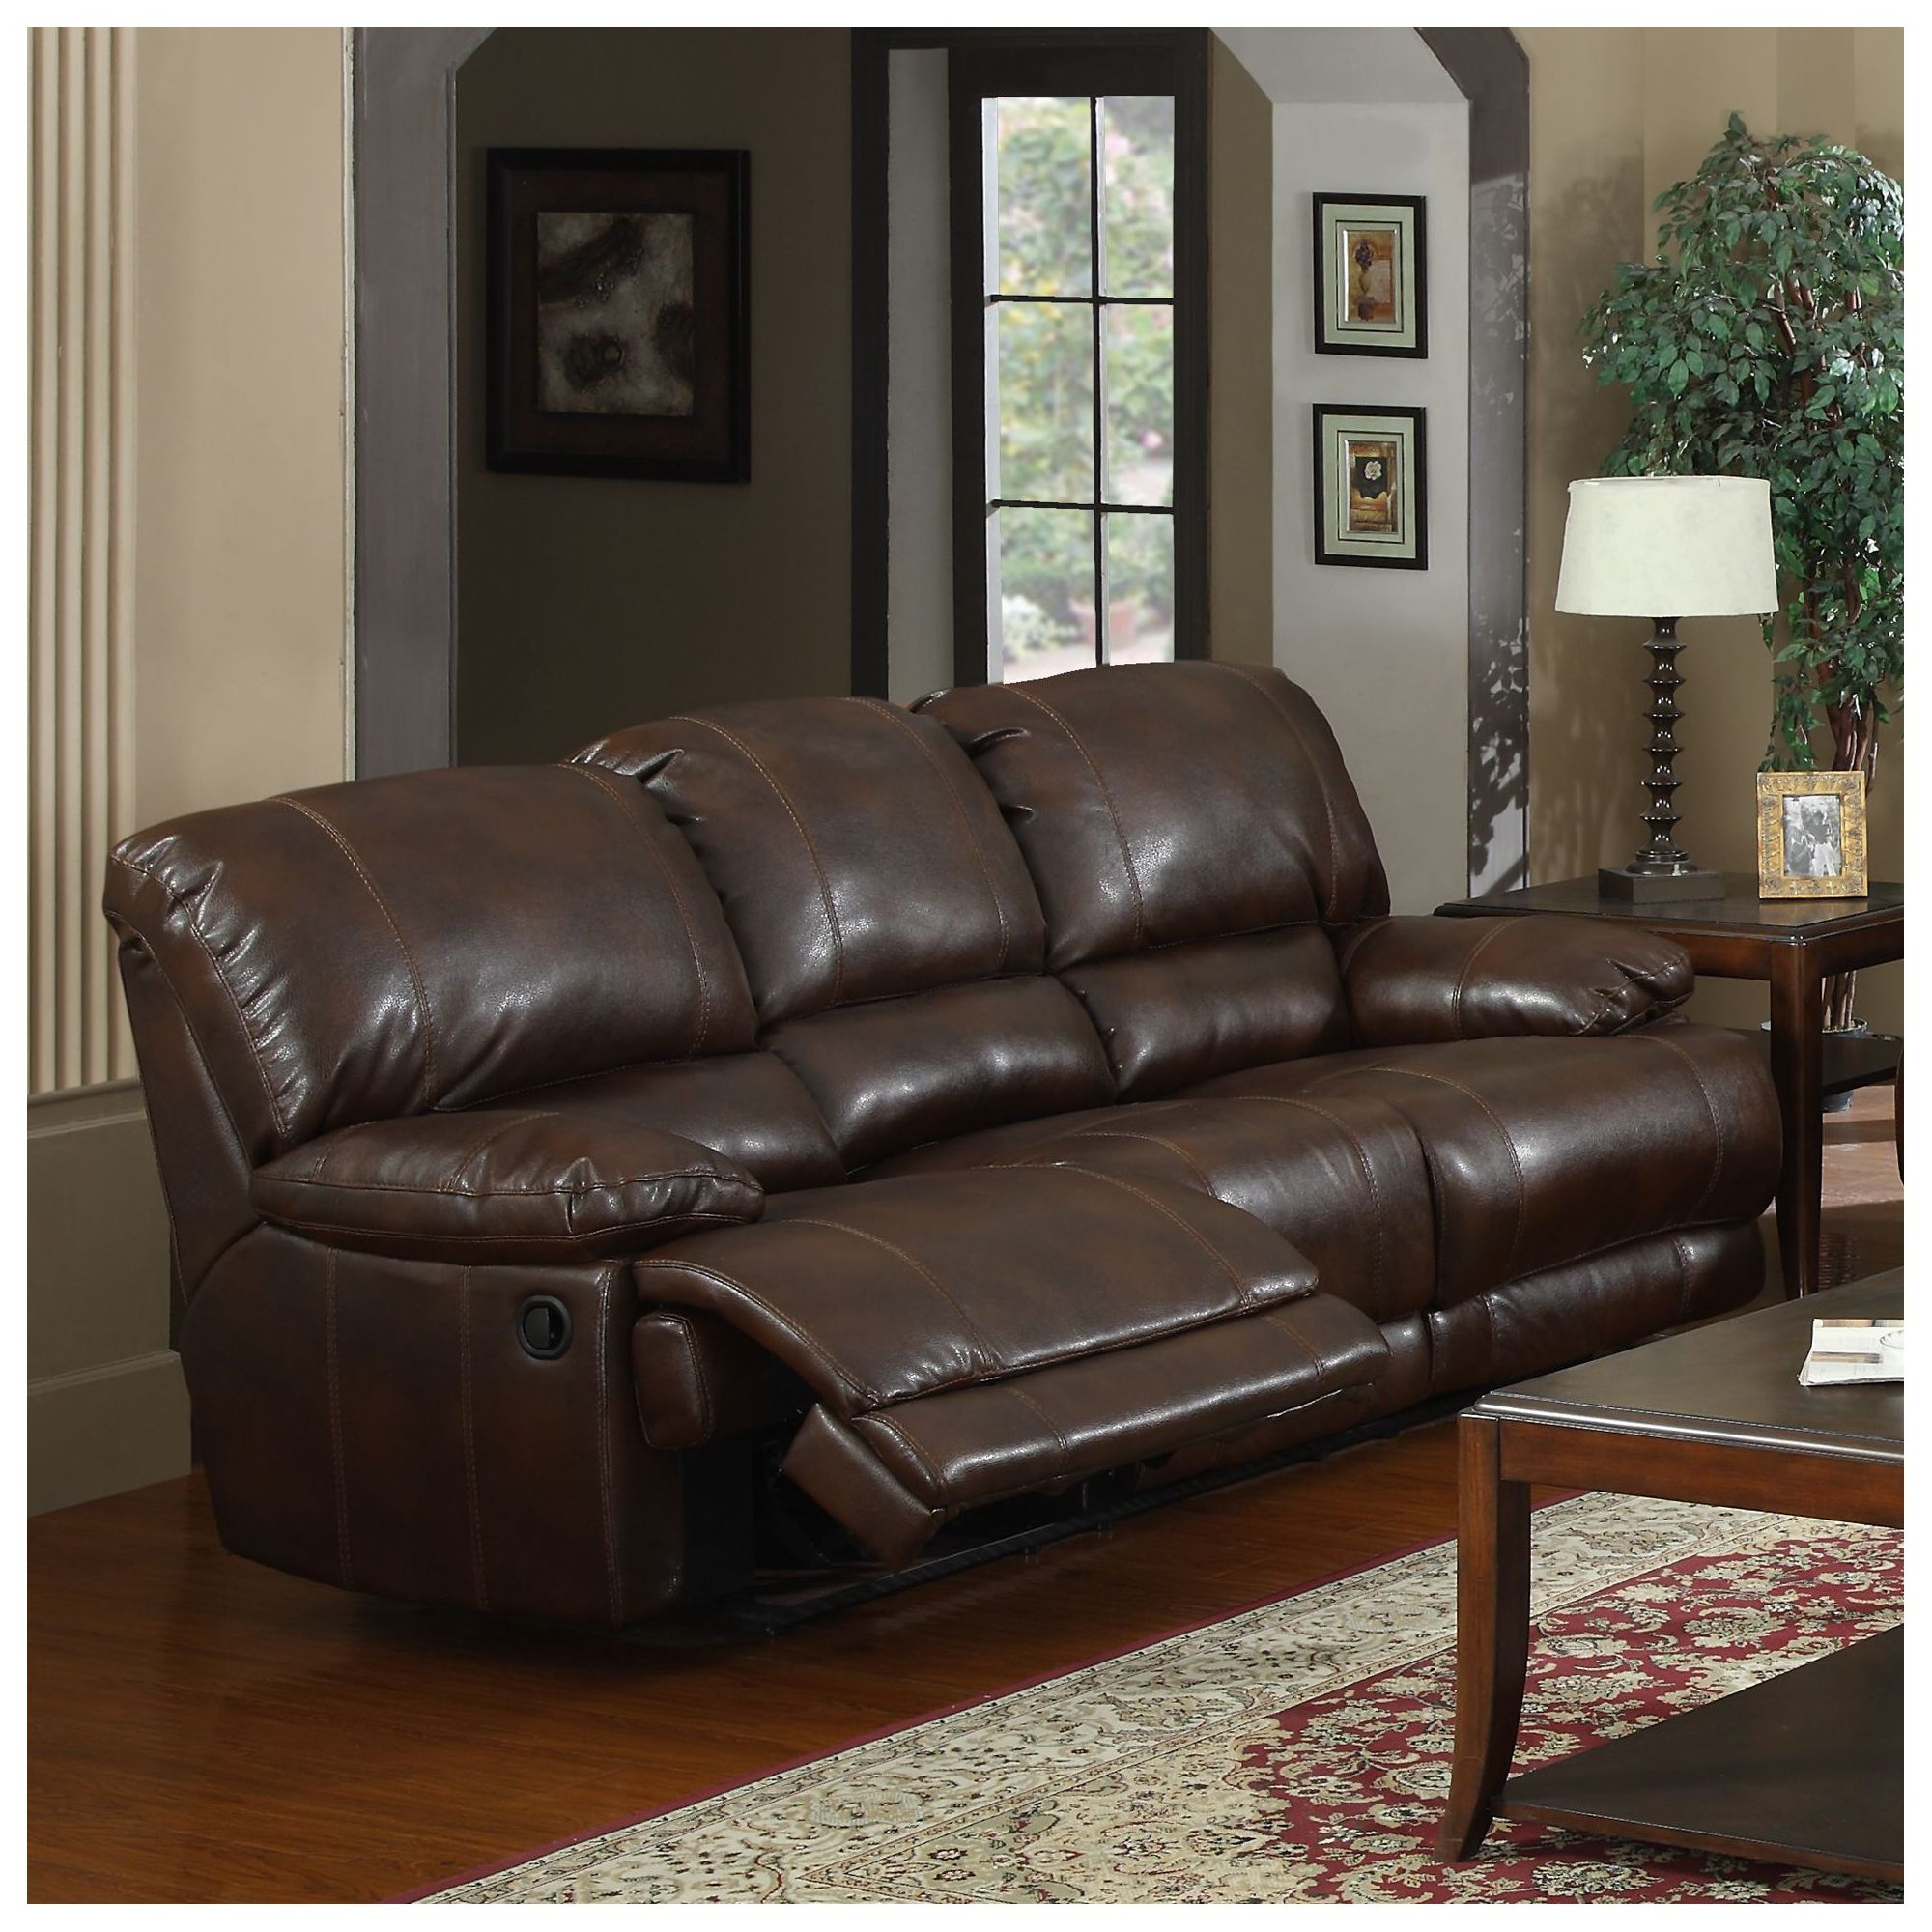 Leather Sofas Corner Sofas Sofa Beds Chesterfield Sofas Welcome